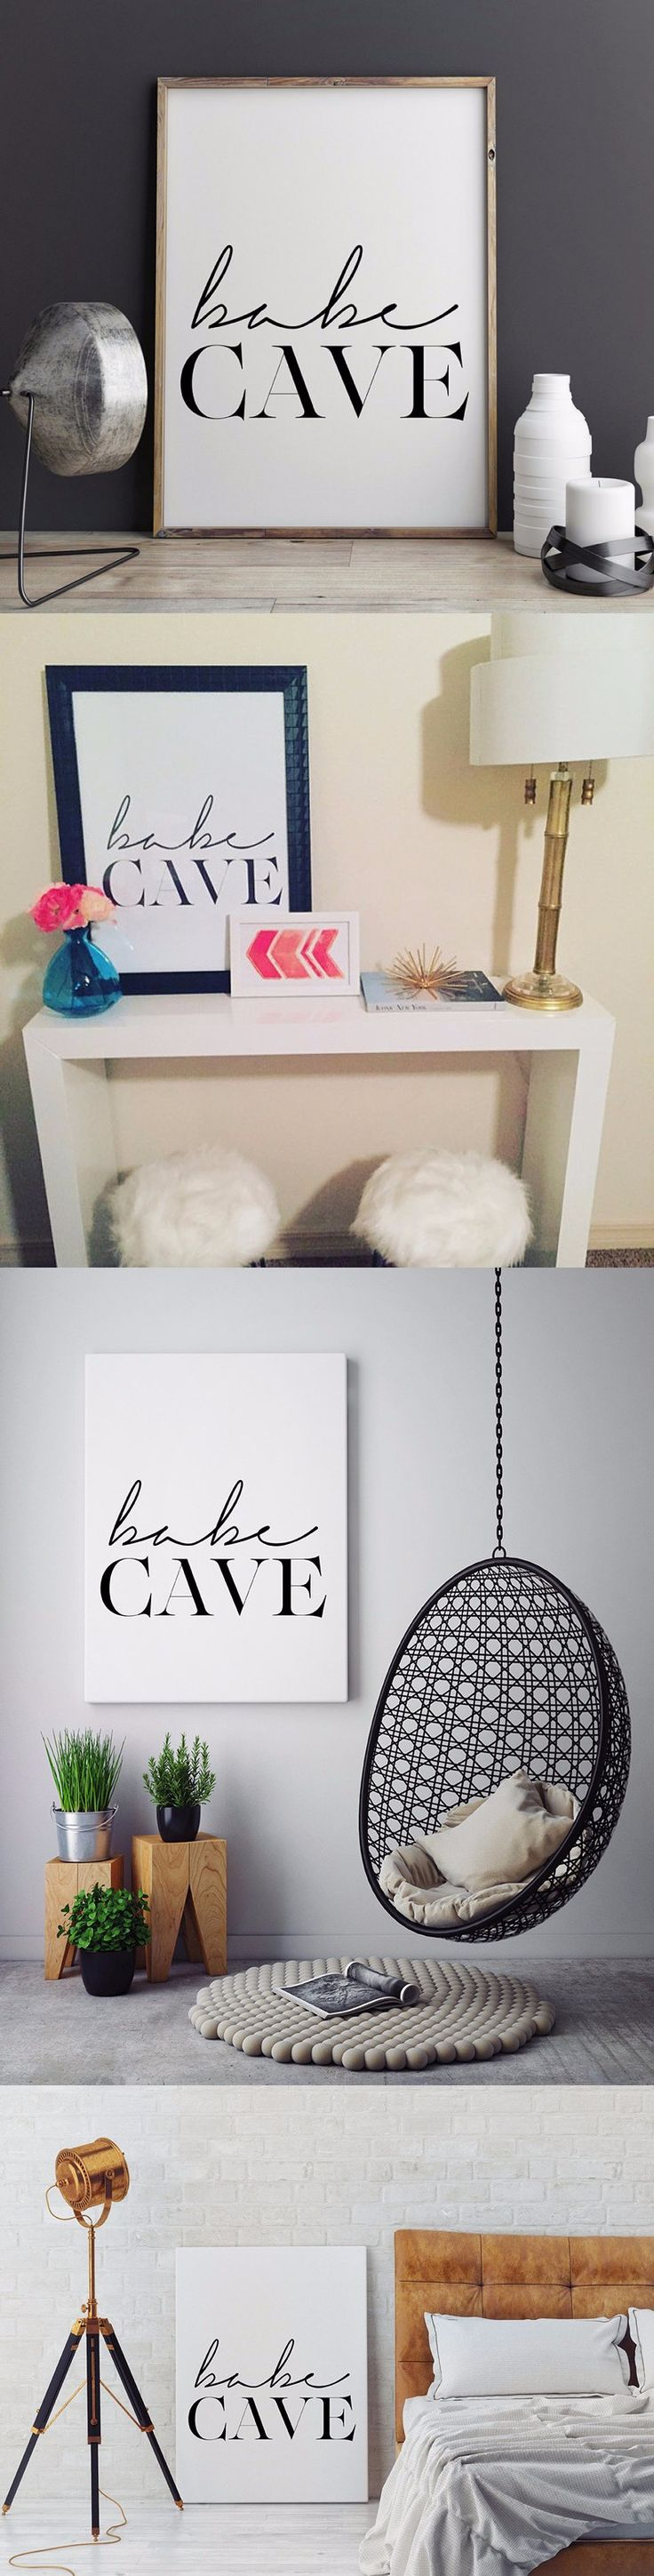 HOT Babe Cave Wall Art, Scandinavian Poster, Affiche Scandinave, Babe Cave,Typography Print canvas painting Bedroom Home Decor $7.99